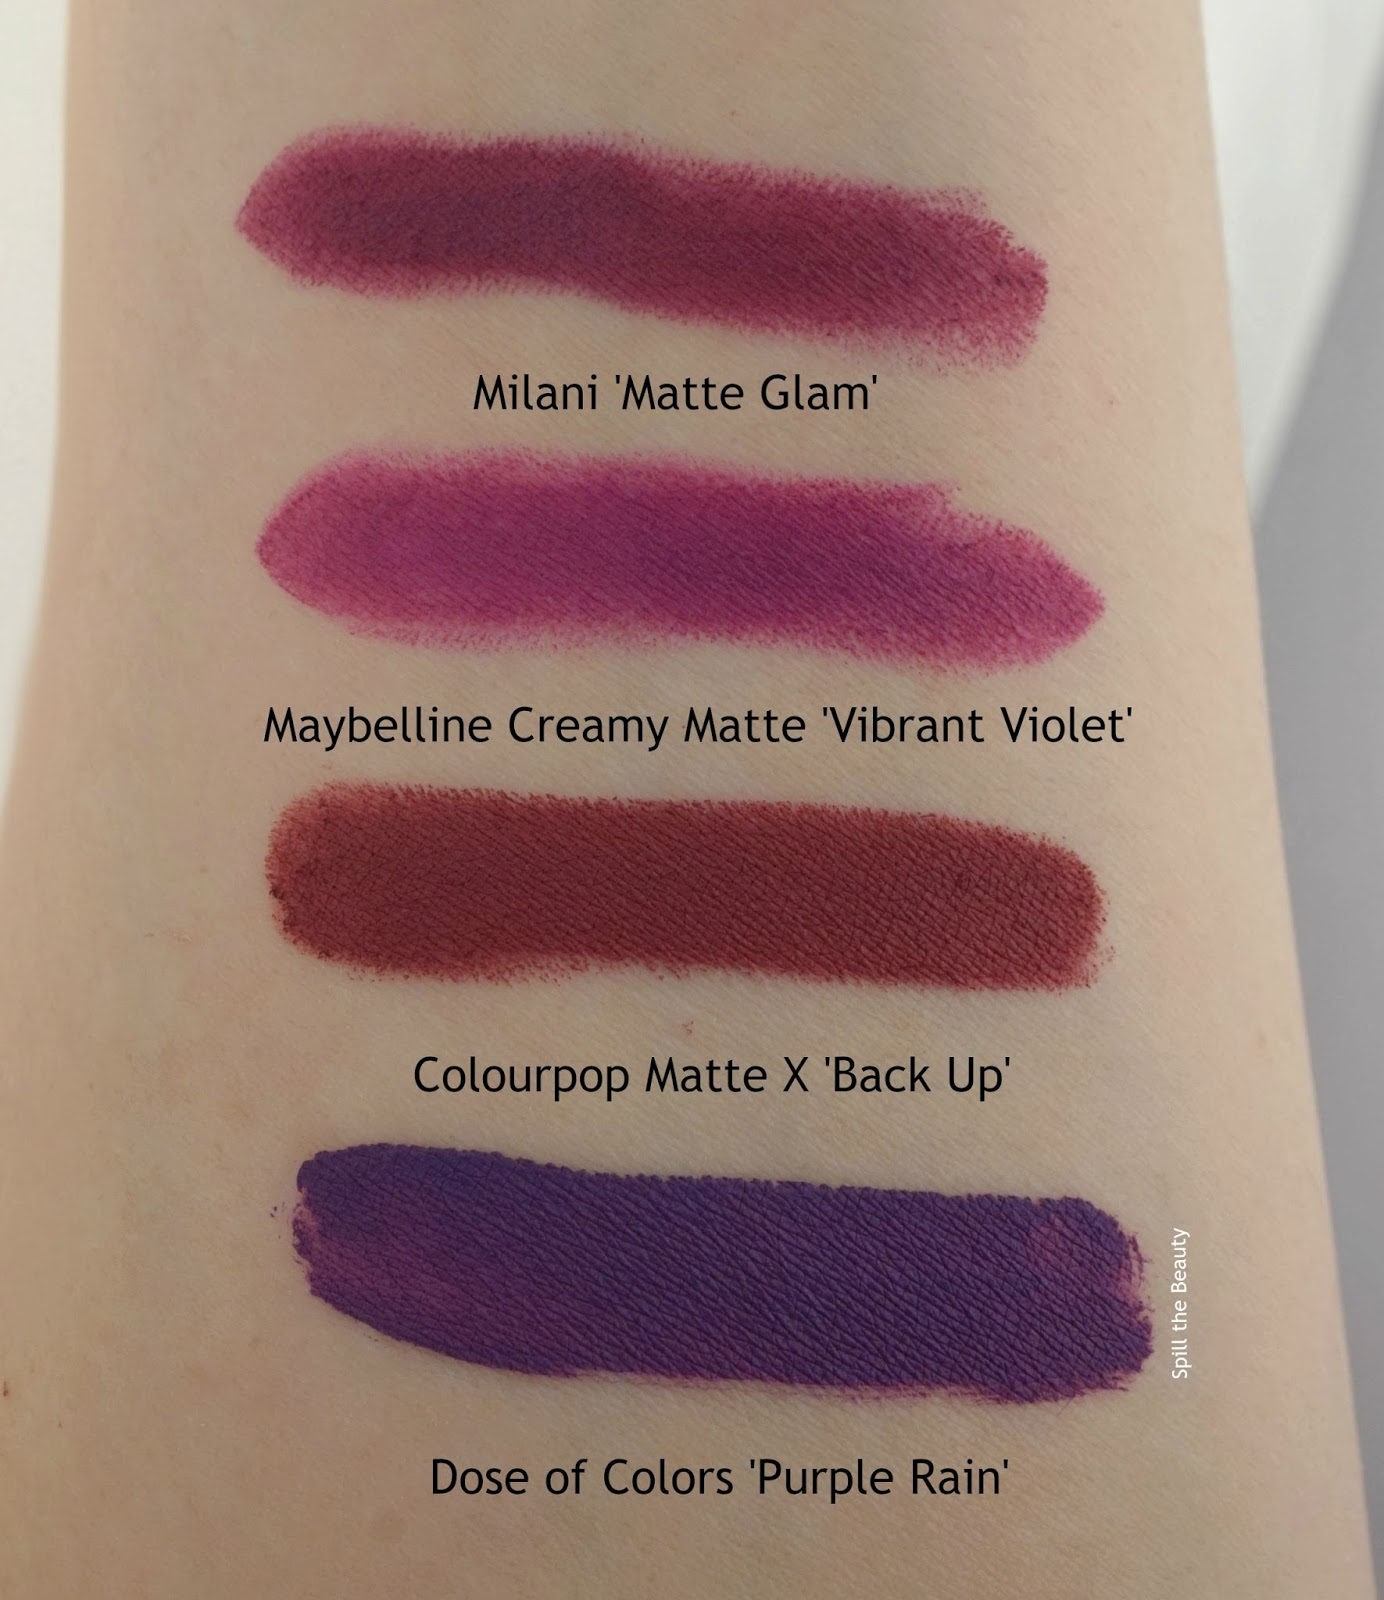 milani maybelline dose of colors lippie stix